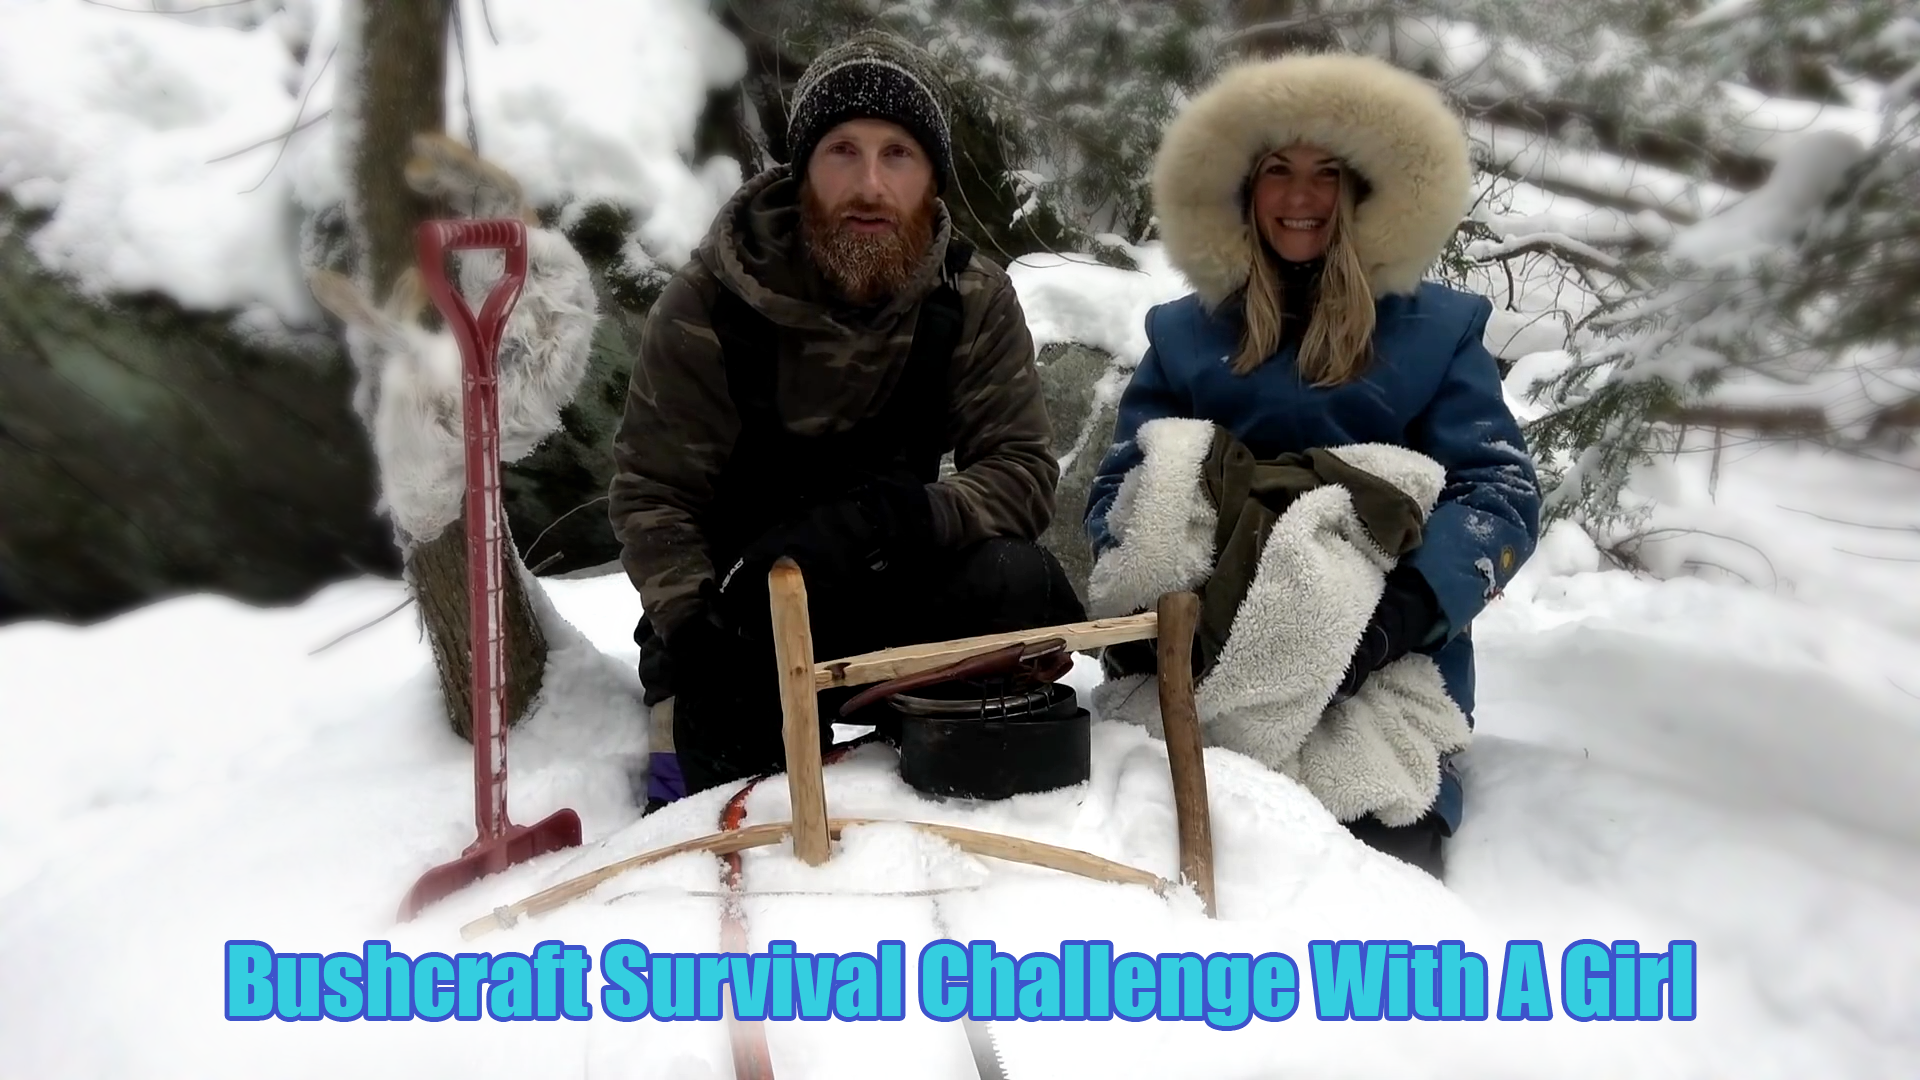 Bushcraft Survival Challenge With A Girl